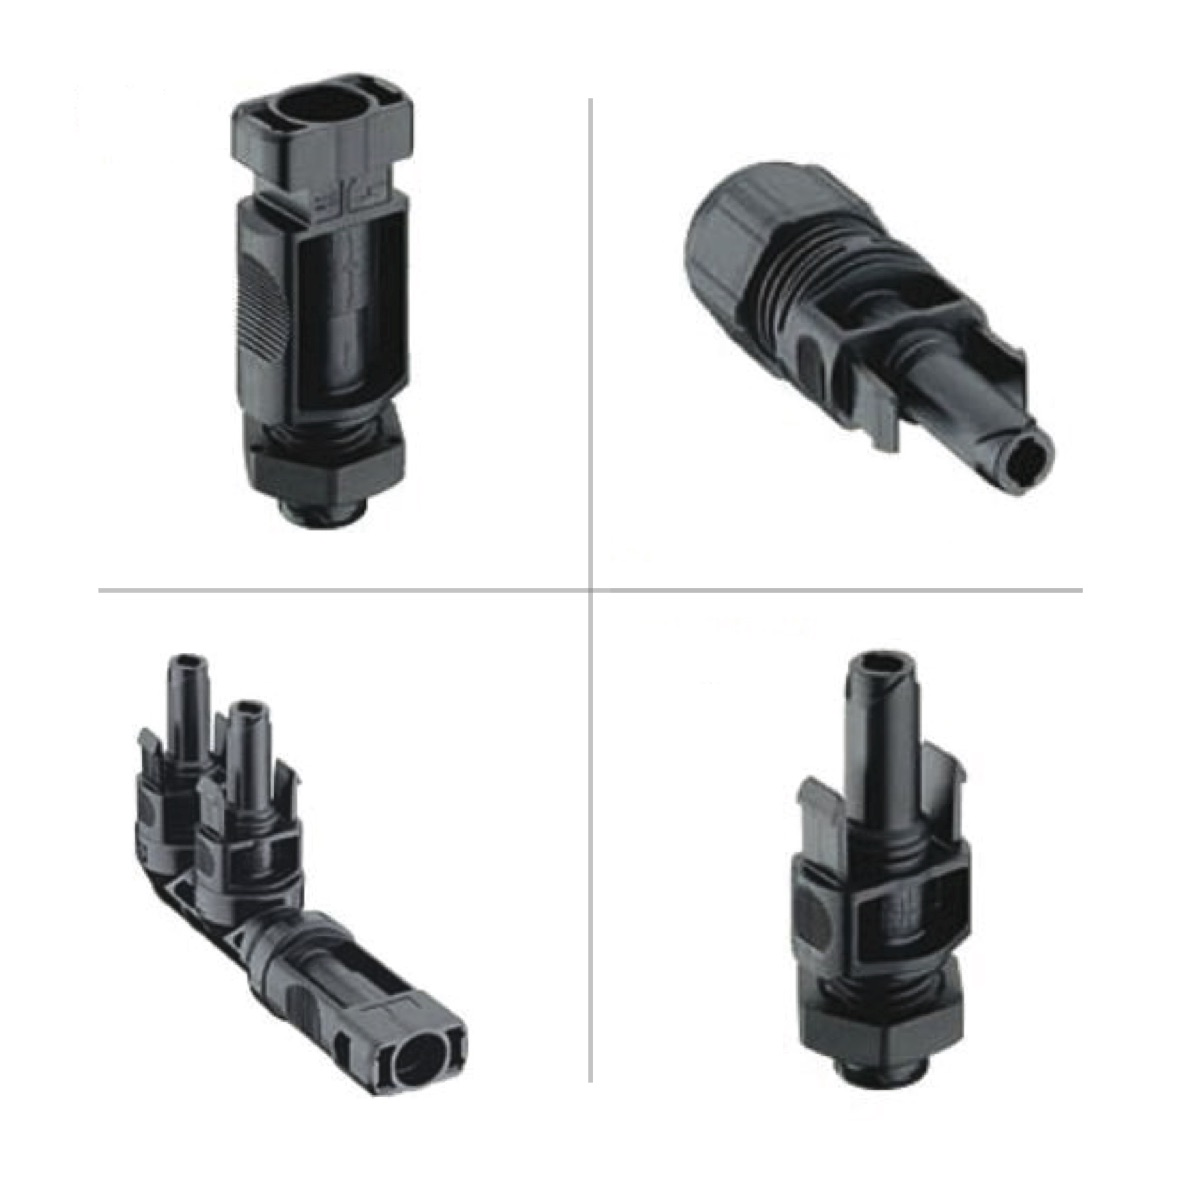 Photovoltaic (PV) Connectors